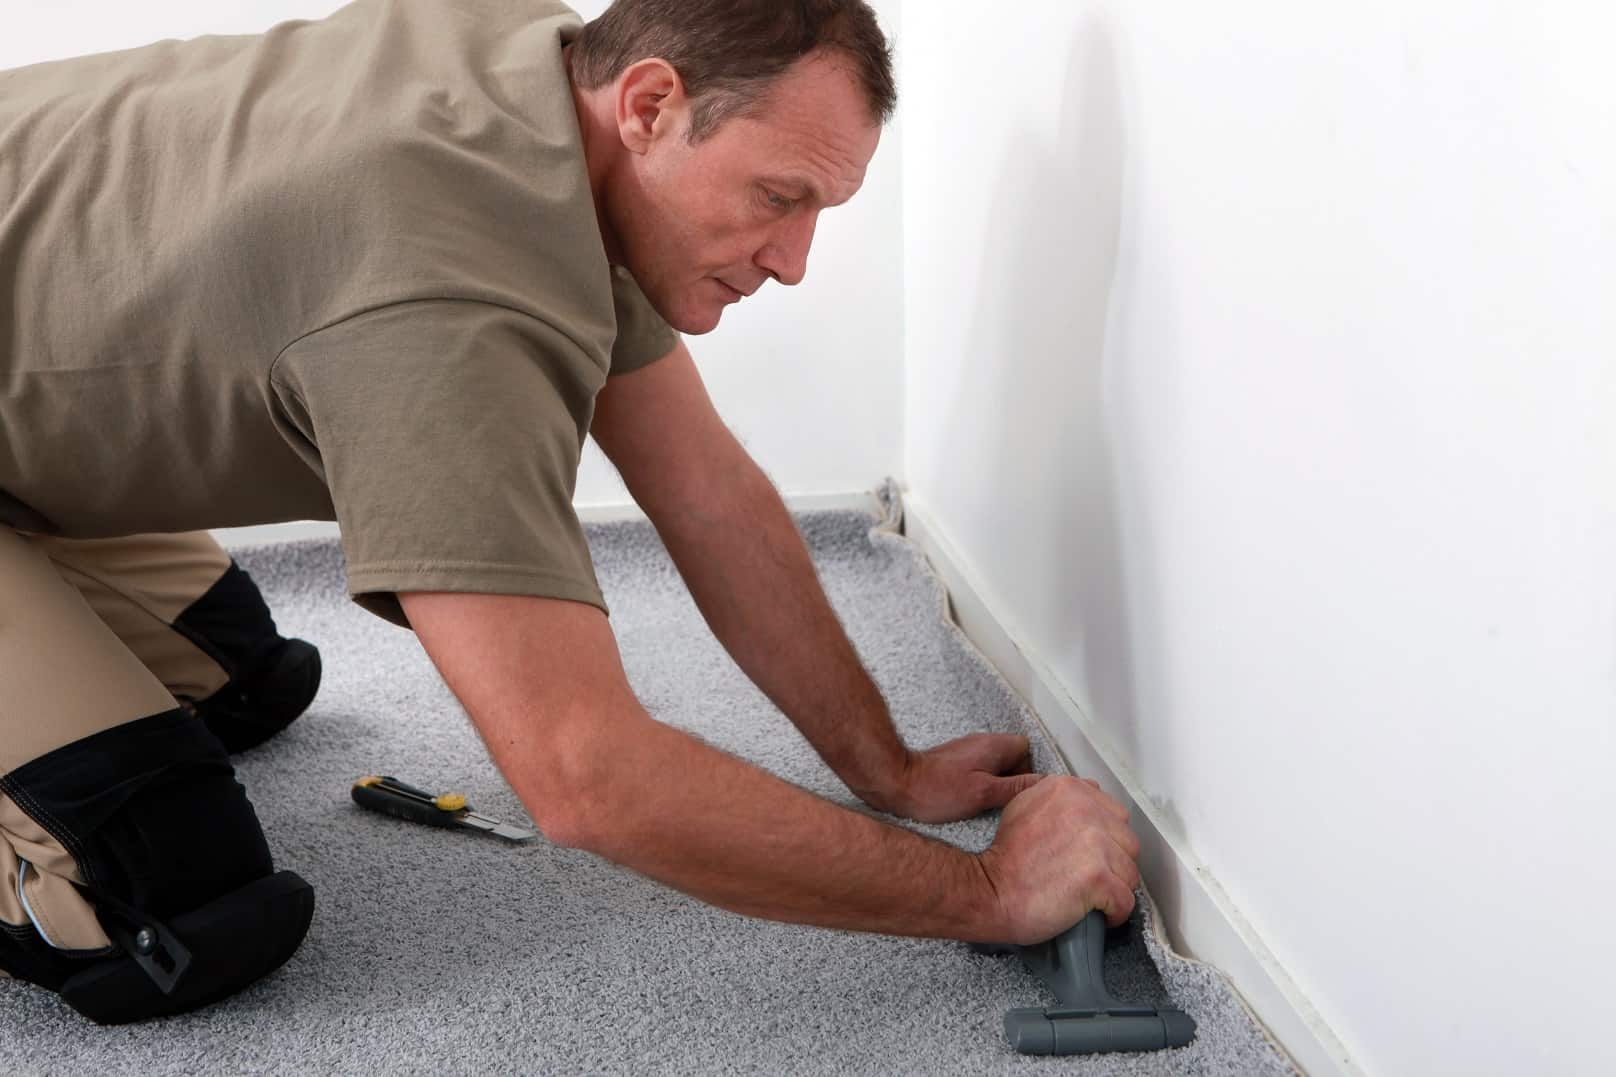 6 Tips For A Smooth Carpet Installation. Leveling the edges of the carpet at the walls with the soft spatula